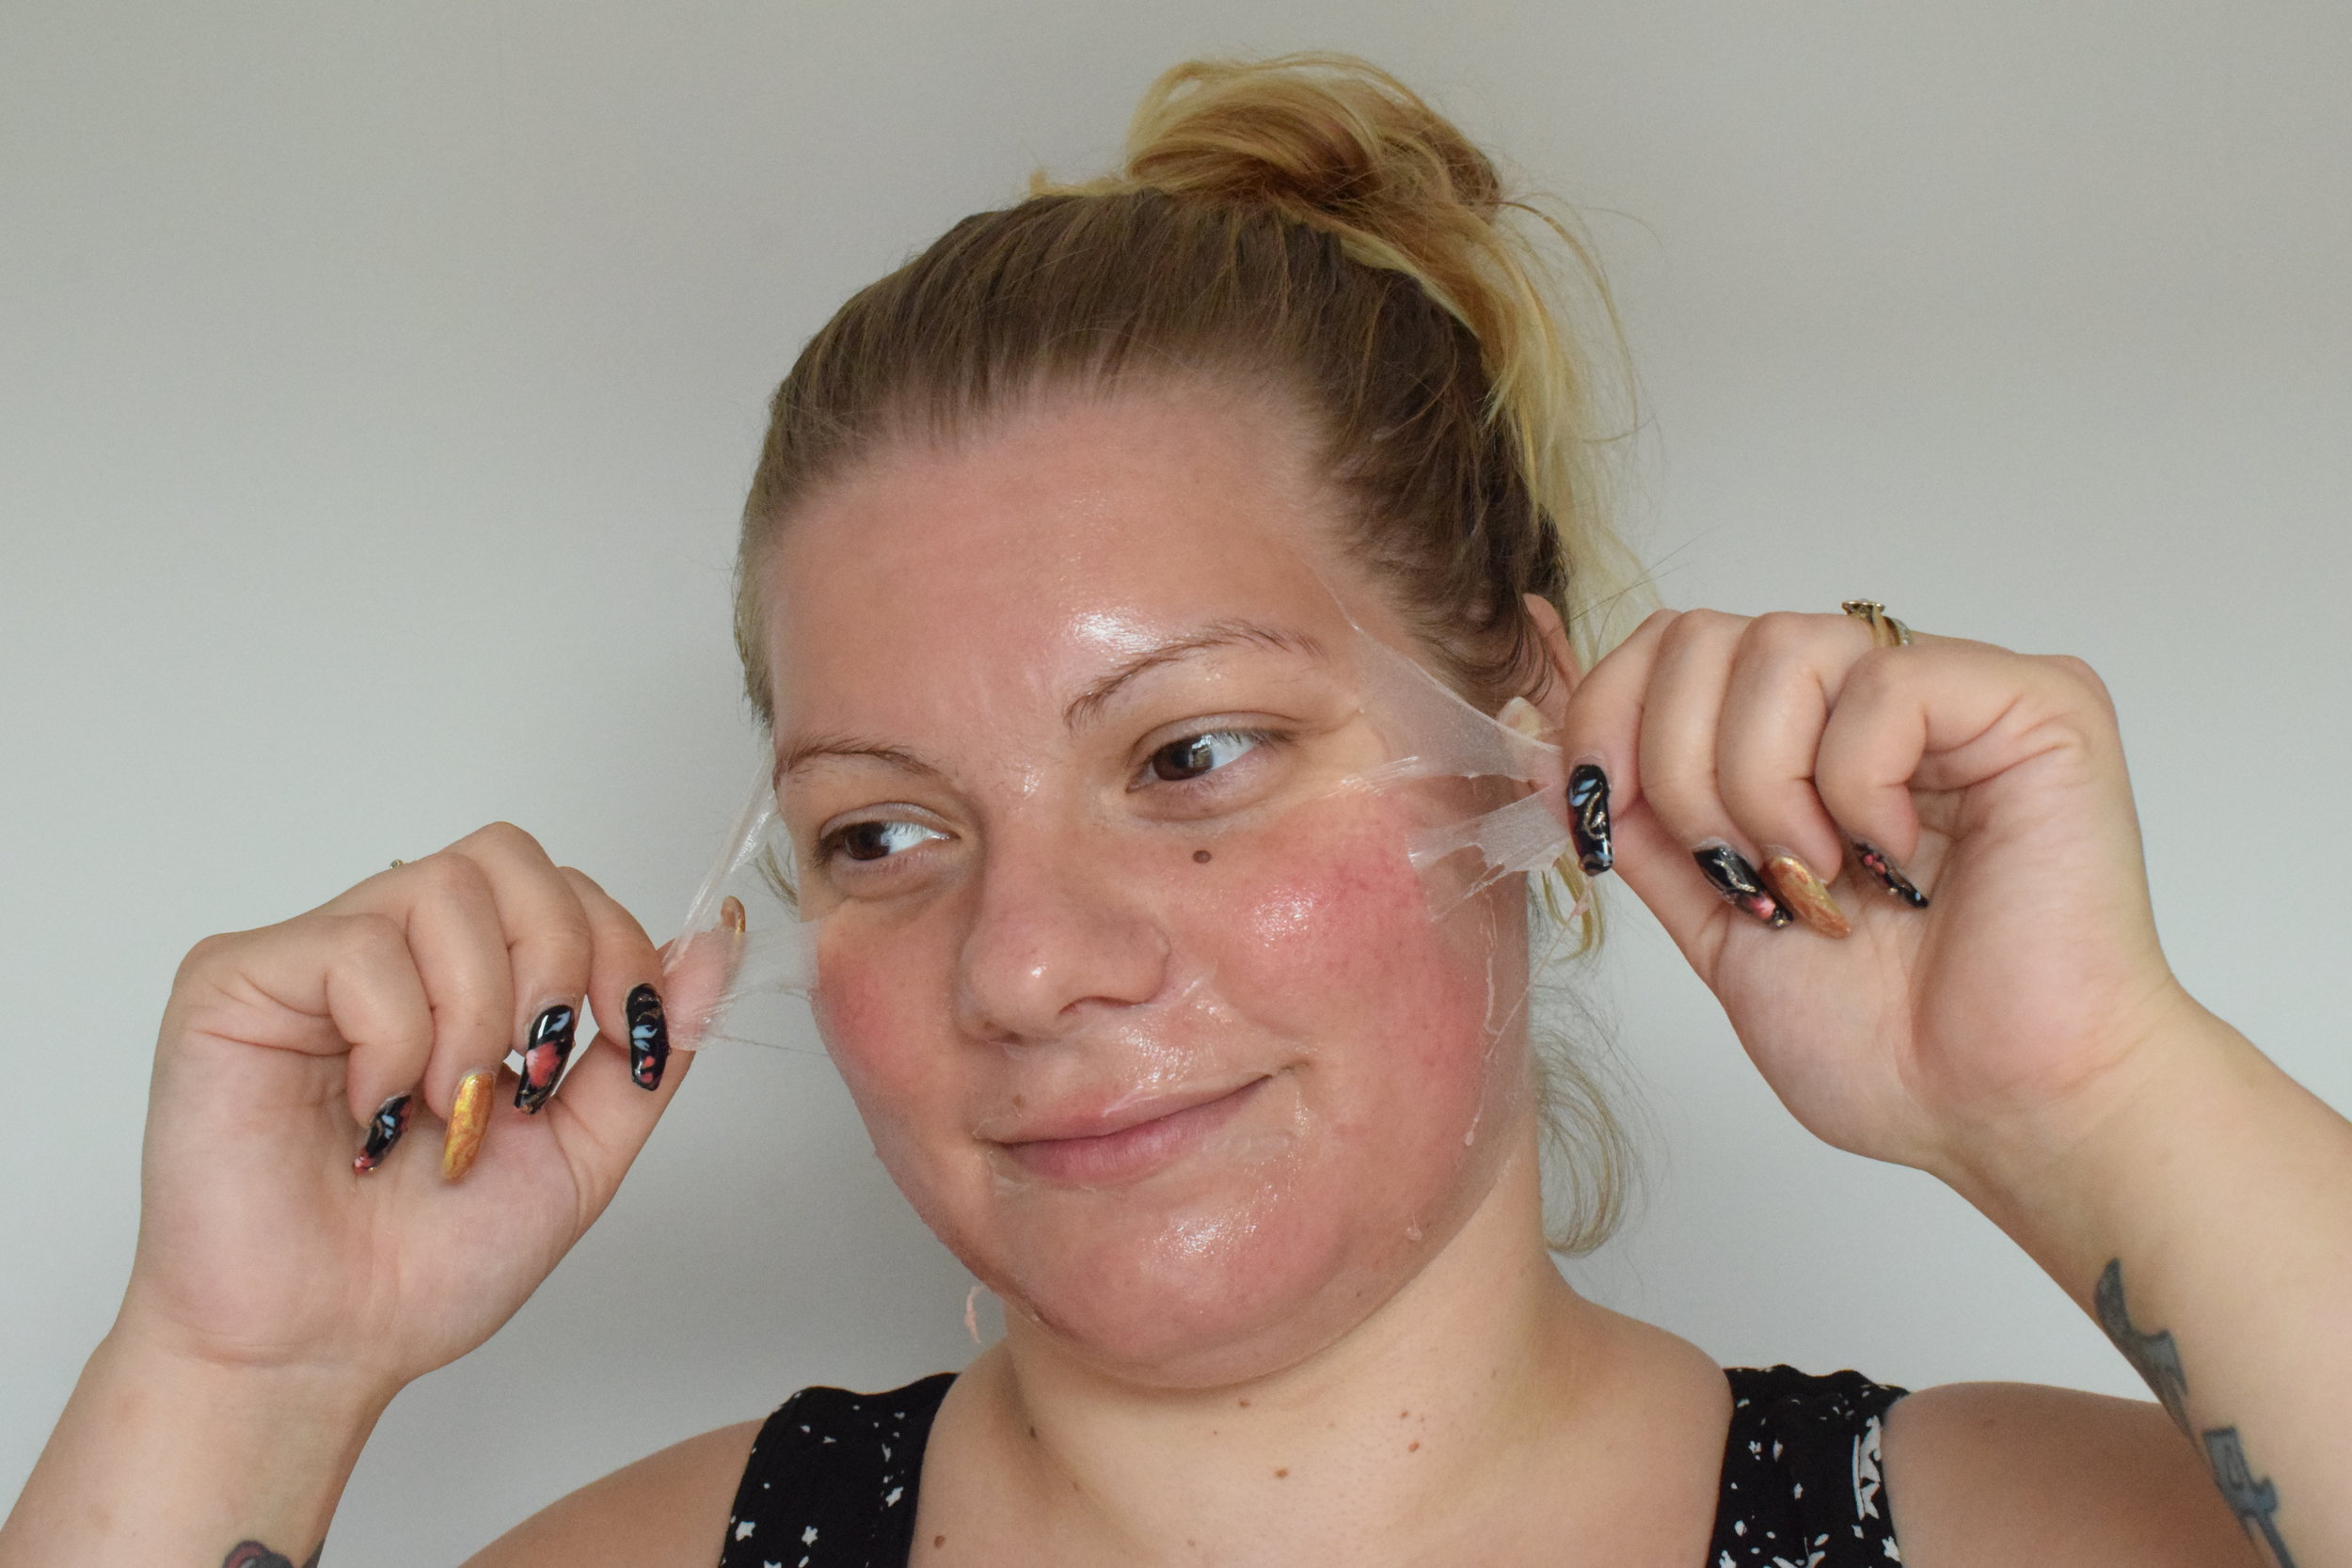 Blackcurrant Burst Peel Off Face Mask Me Becoming Mum's Christmas Stocking Fillers for Her